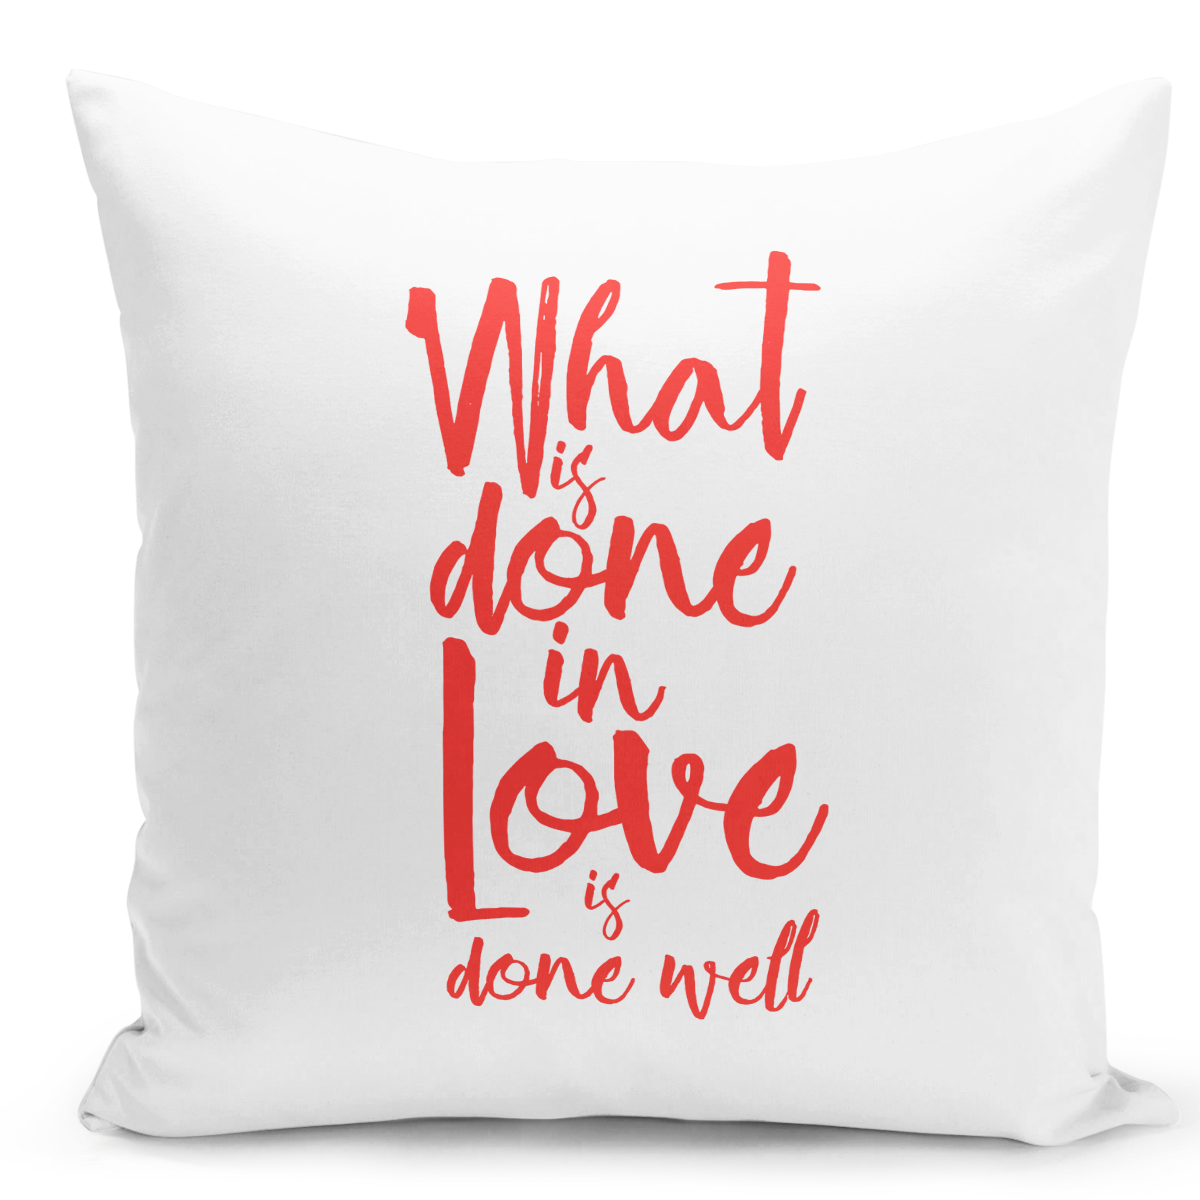 16x16-inch-Throw-Pillow-for-Home-Decor-with-Stuffing-Love-Quote-Pillow-For-Couples-